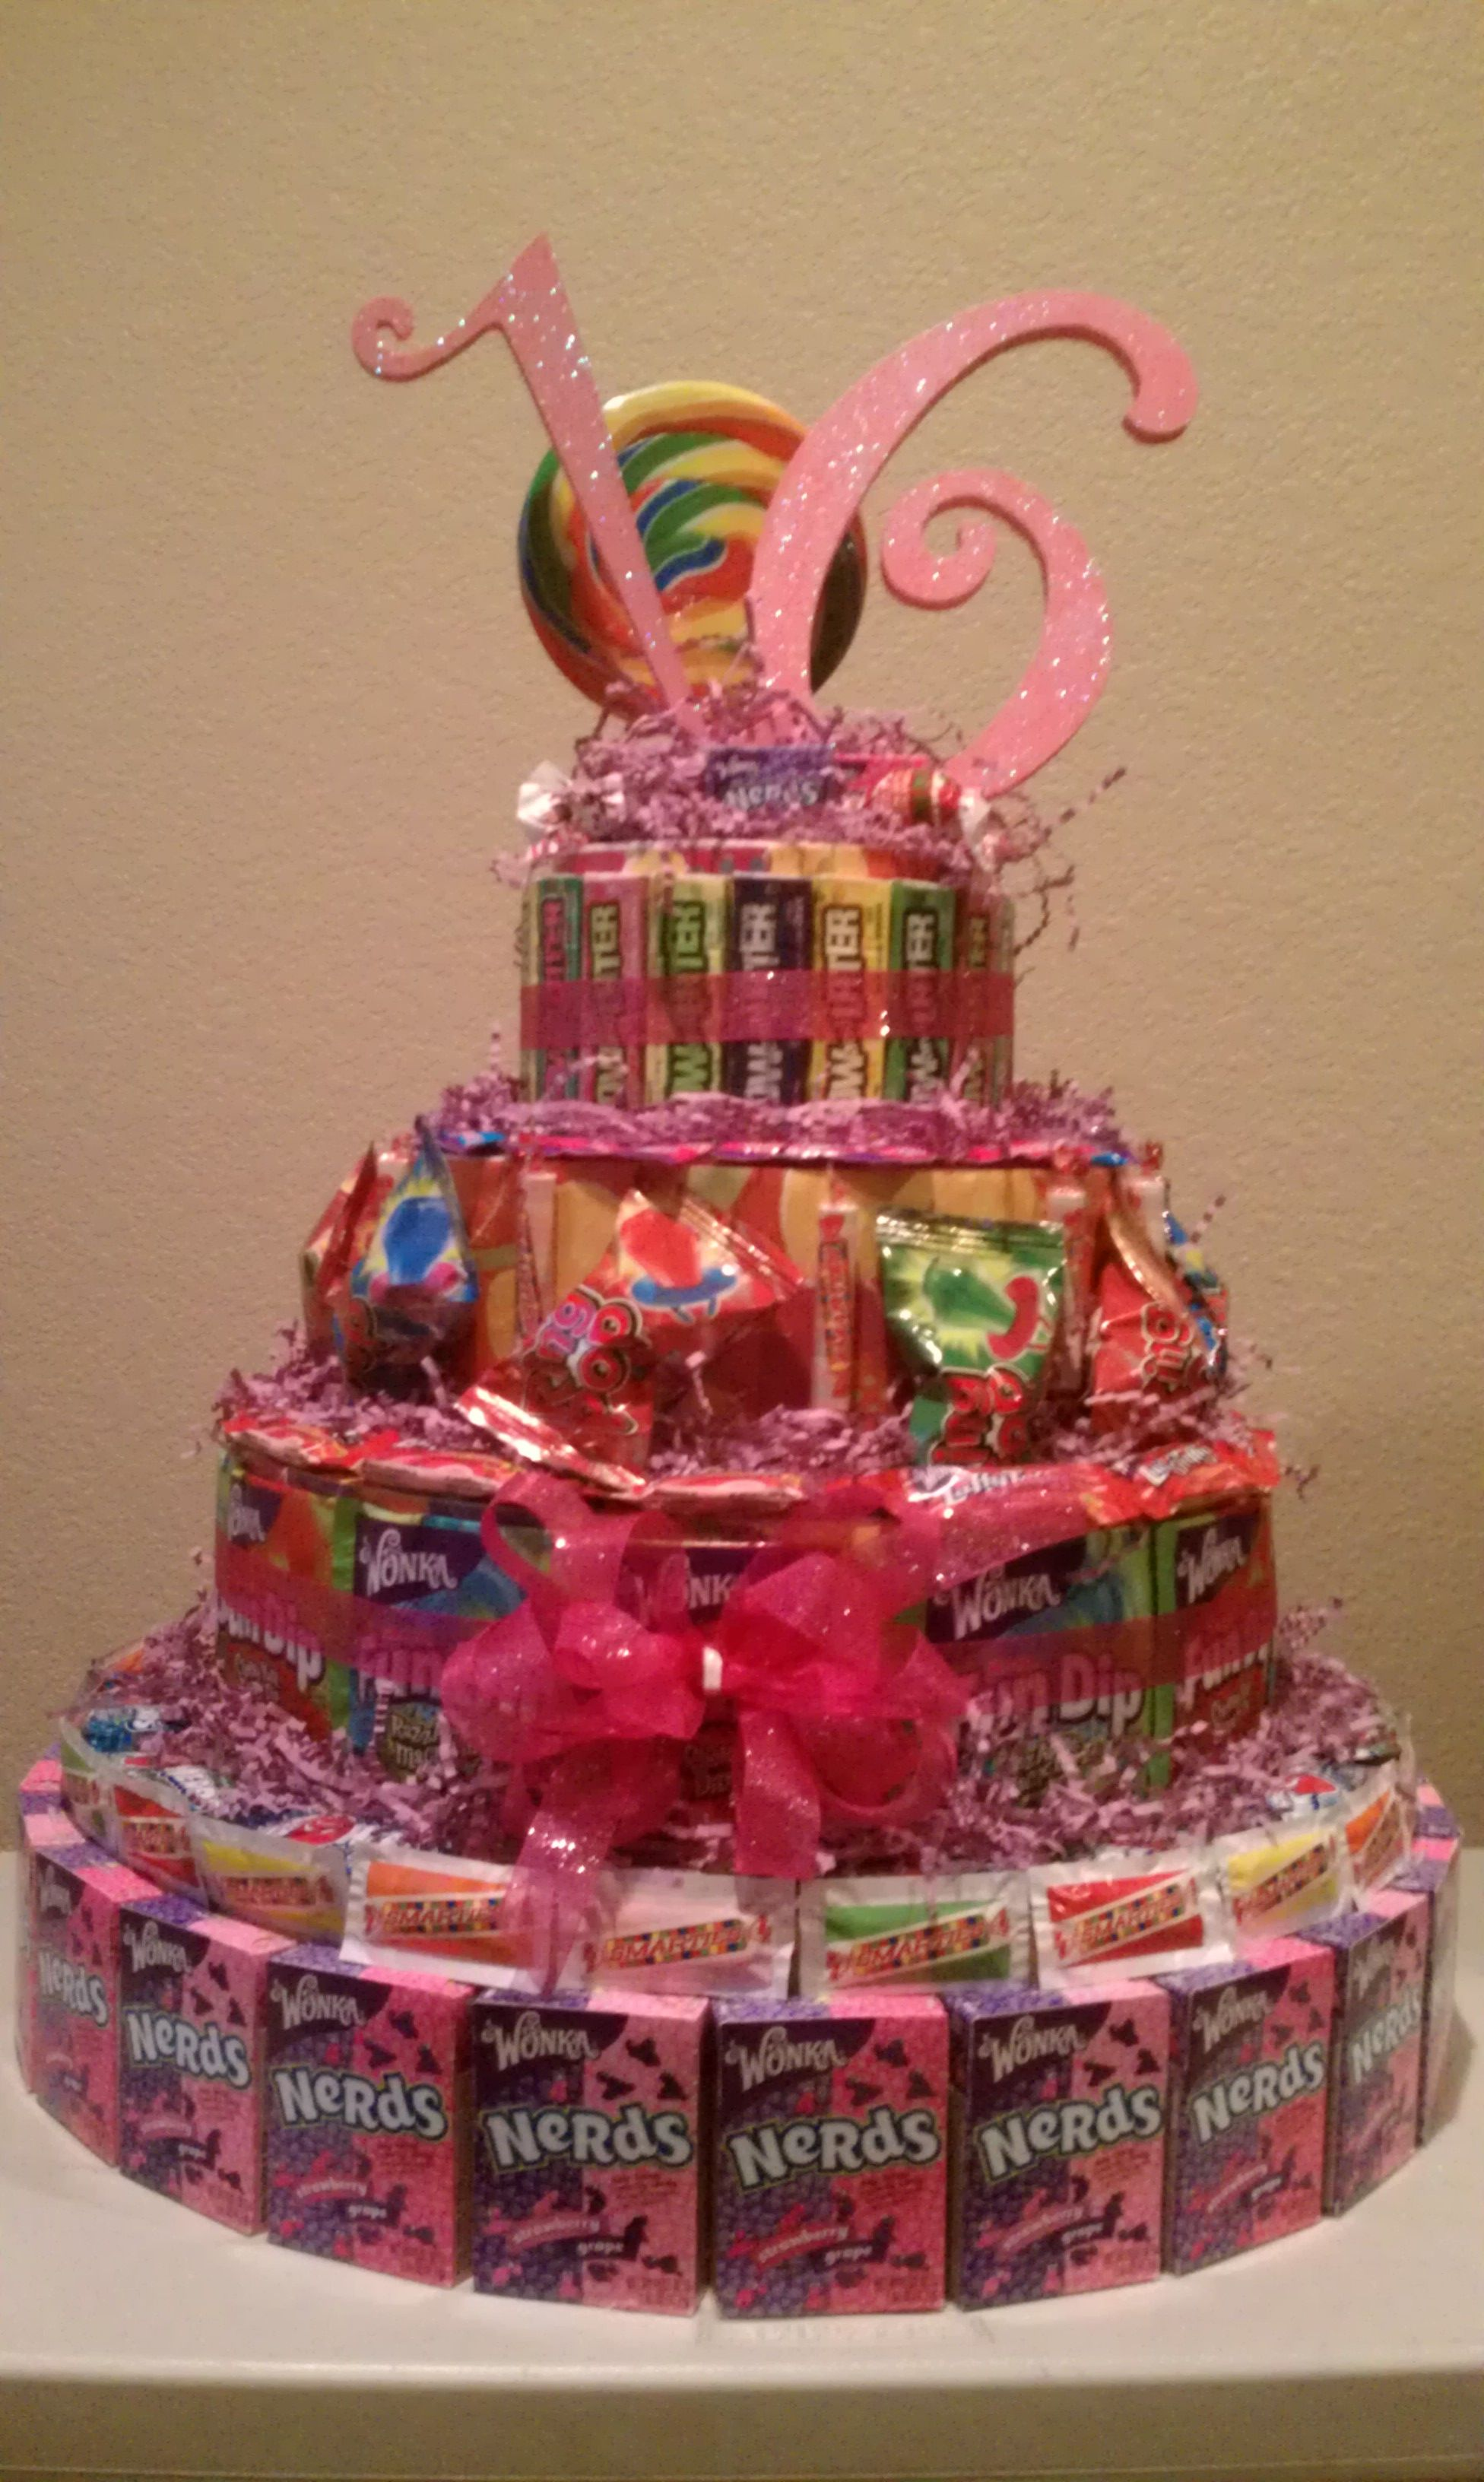 Sweet 16 Candy Cake! Cool Idea Stacey!